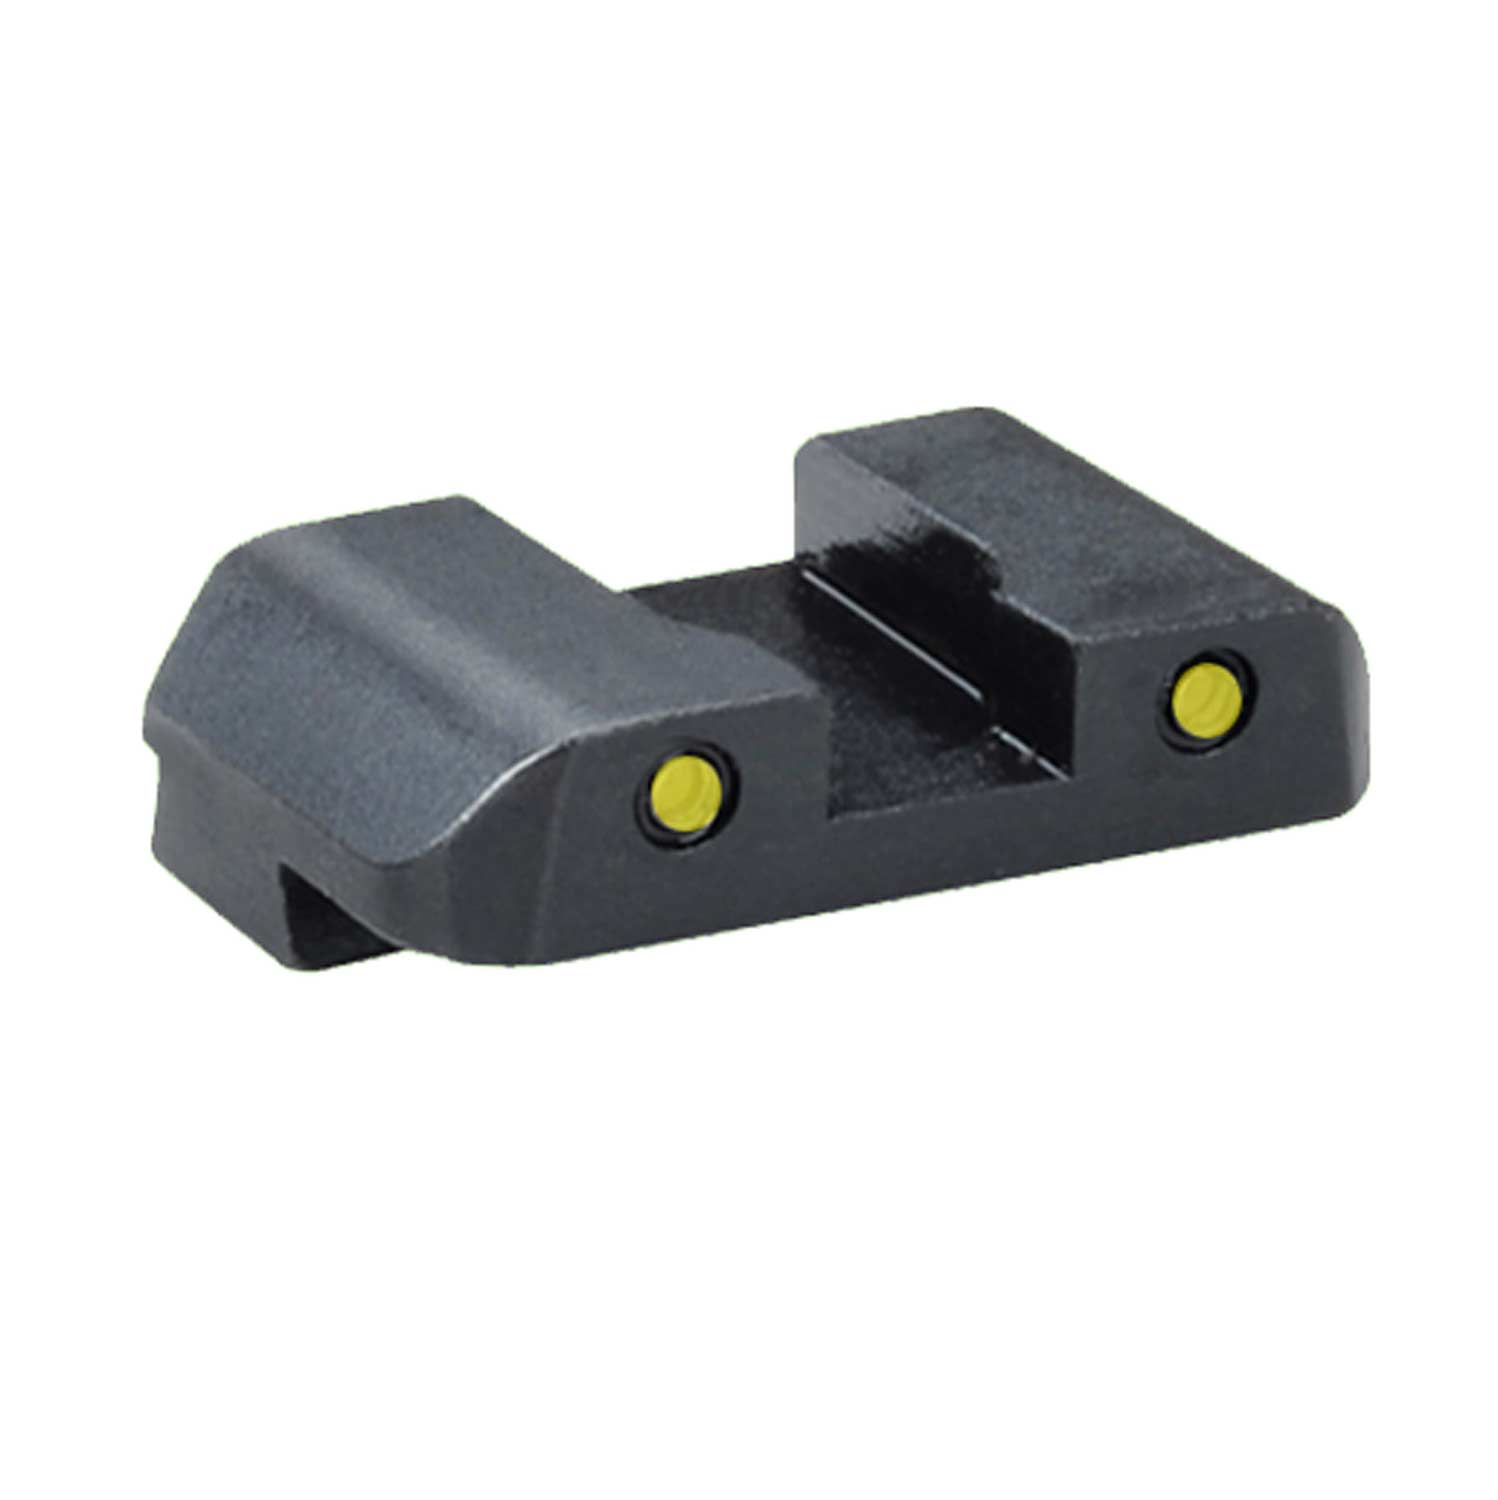 Ameriglo Pro Operator Style Rear Night Sights